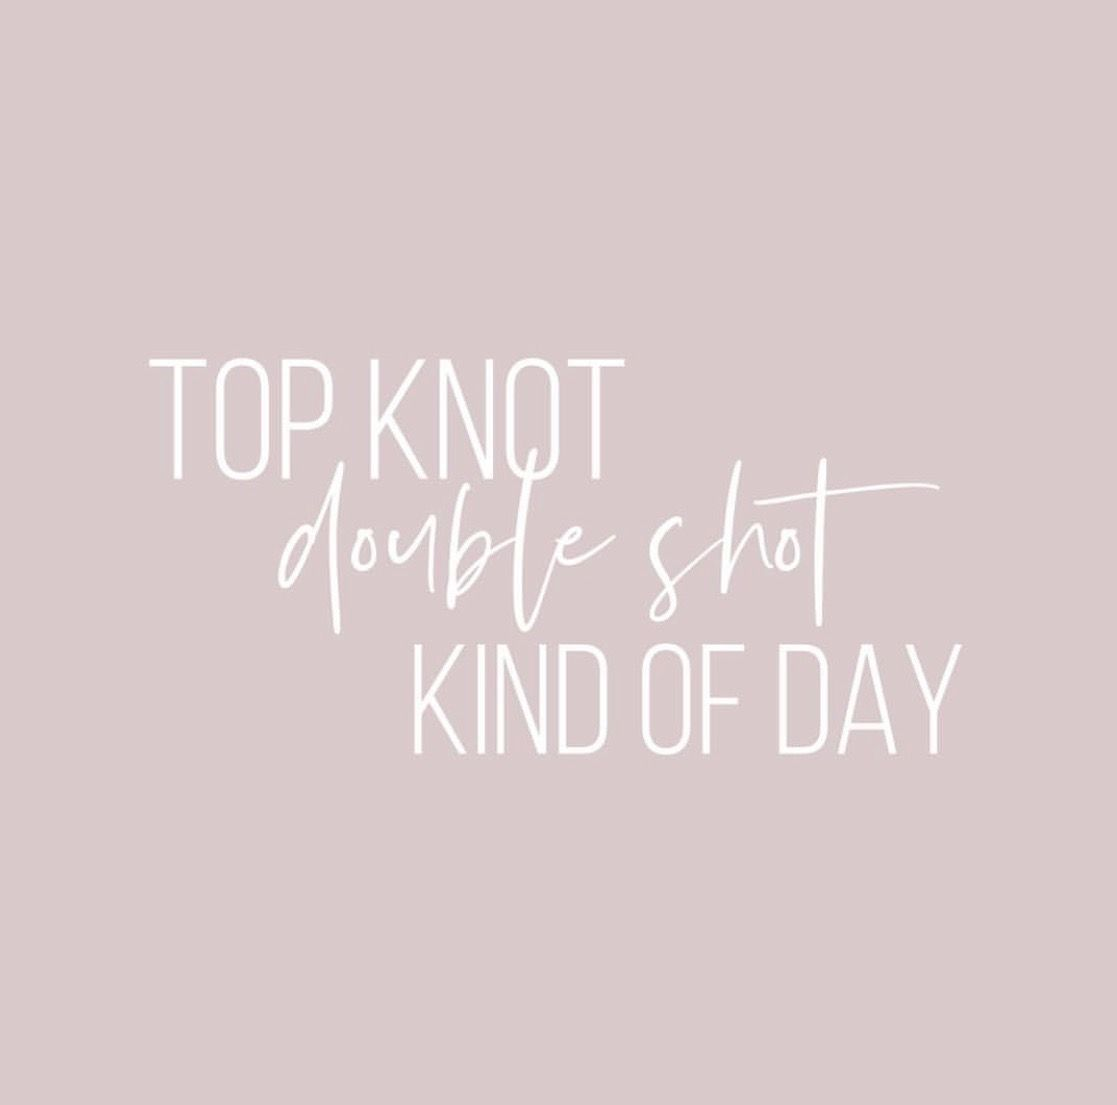 Top Knot Double Shot Kind Of Day Hair Quotes Funny Hair Salon Quotes Hair Captions